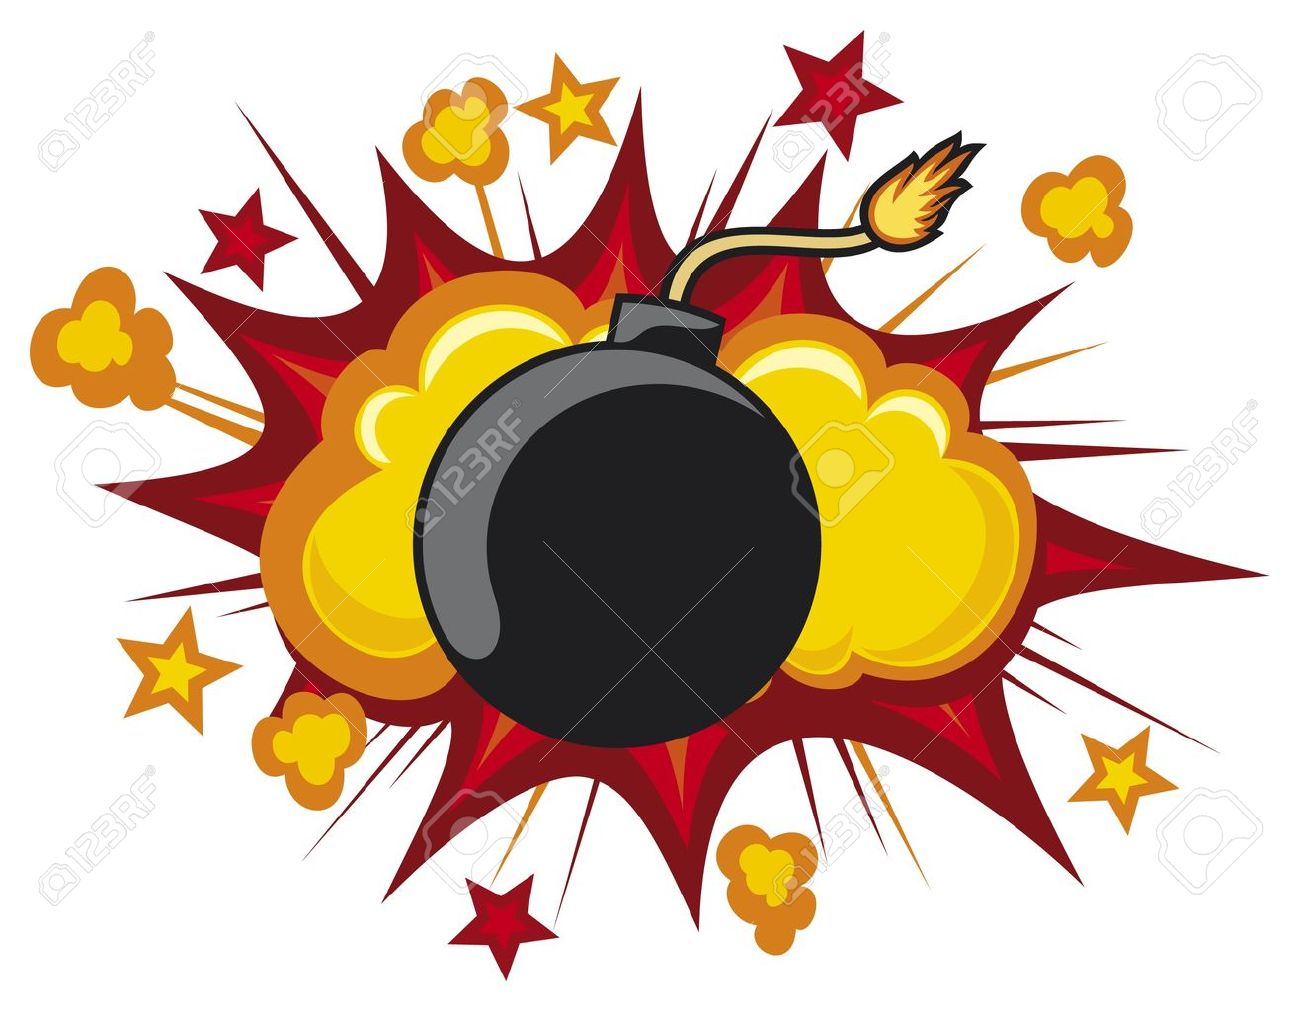 old bomb starting to explode (comic book explosion) old style bomb Stock Vector - 15686858